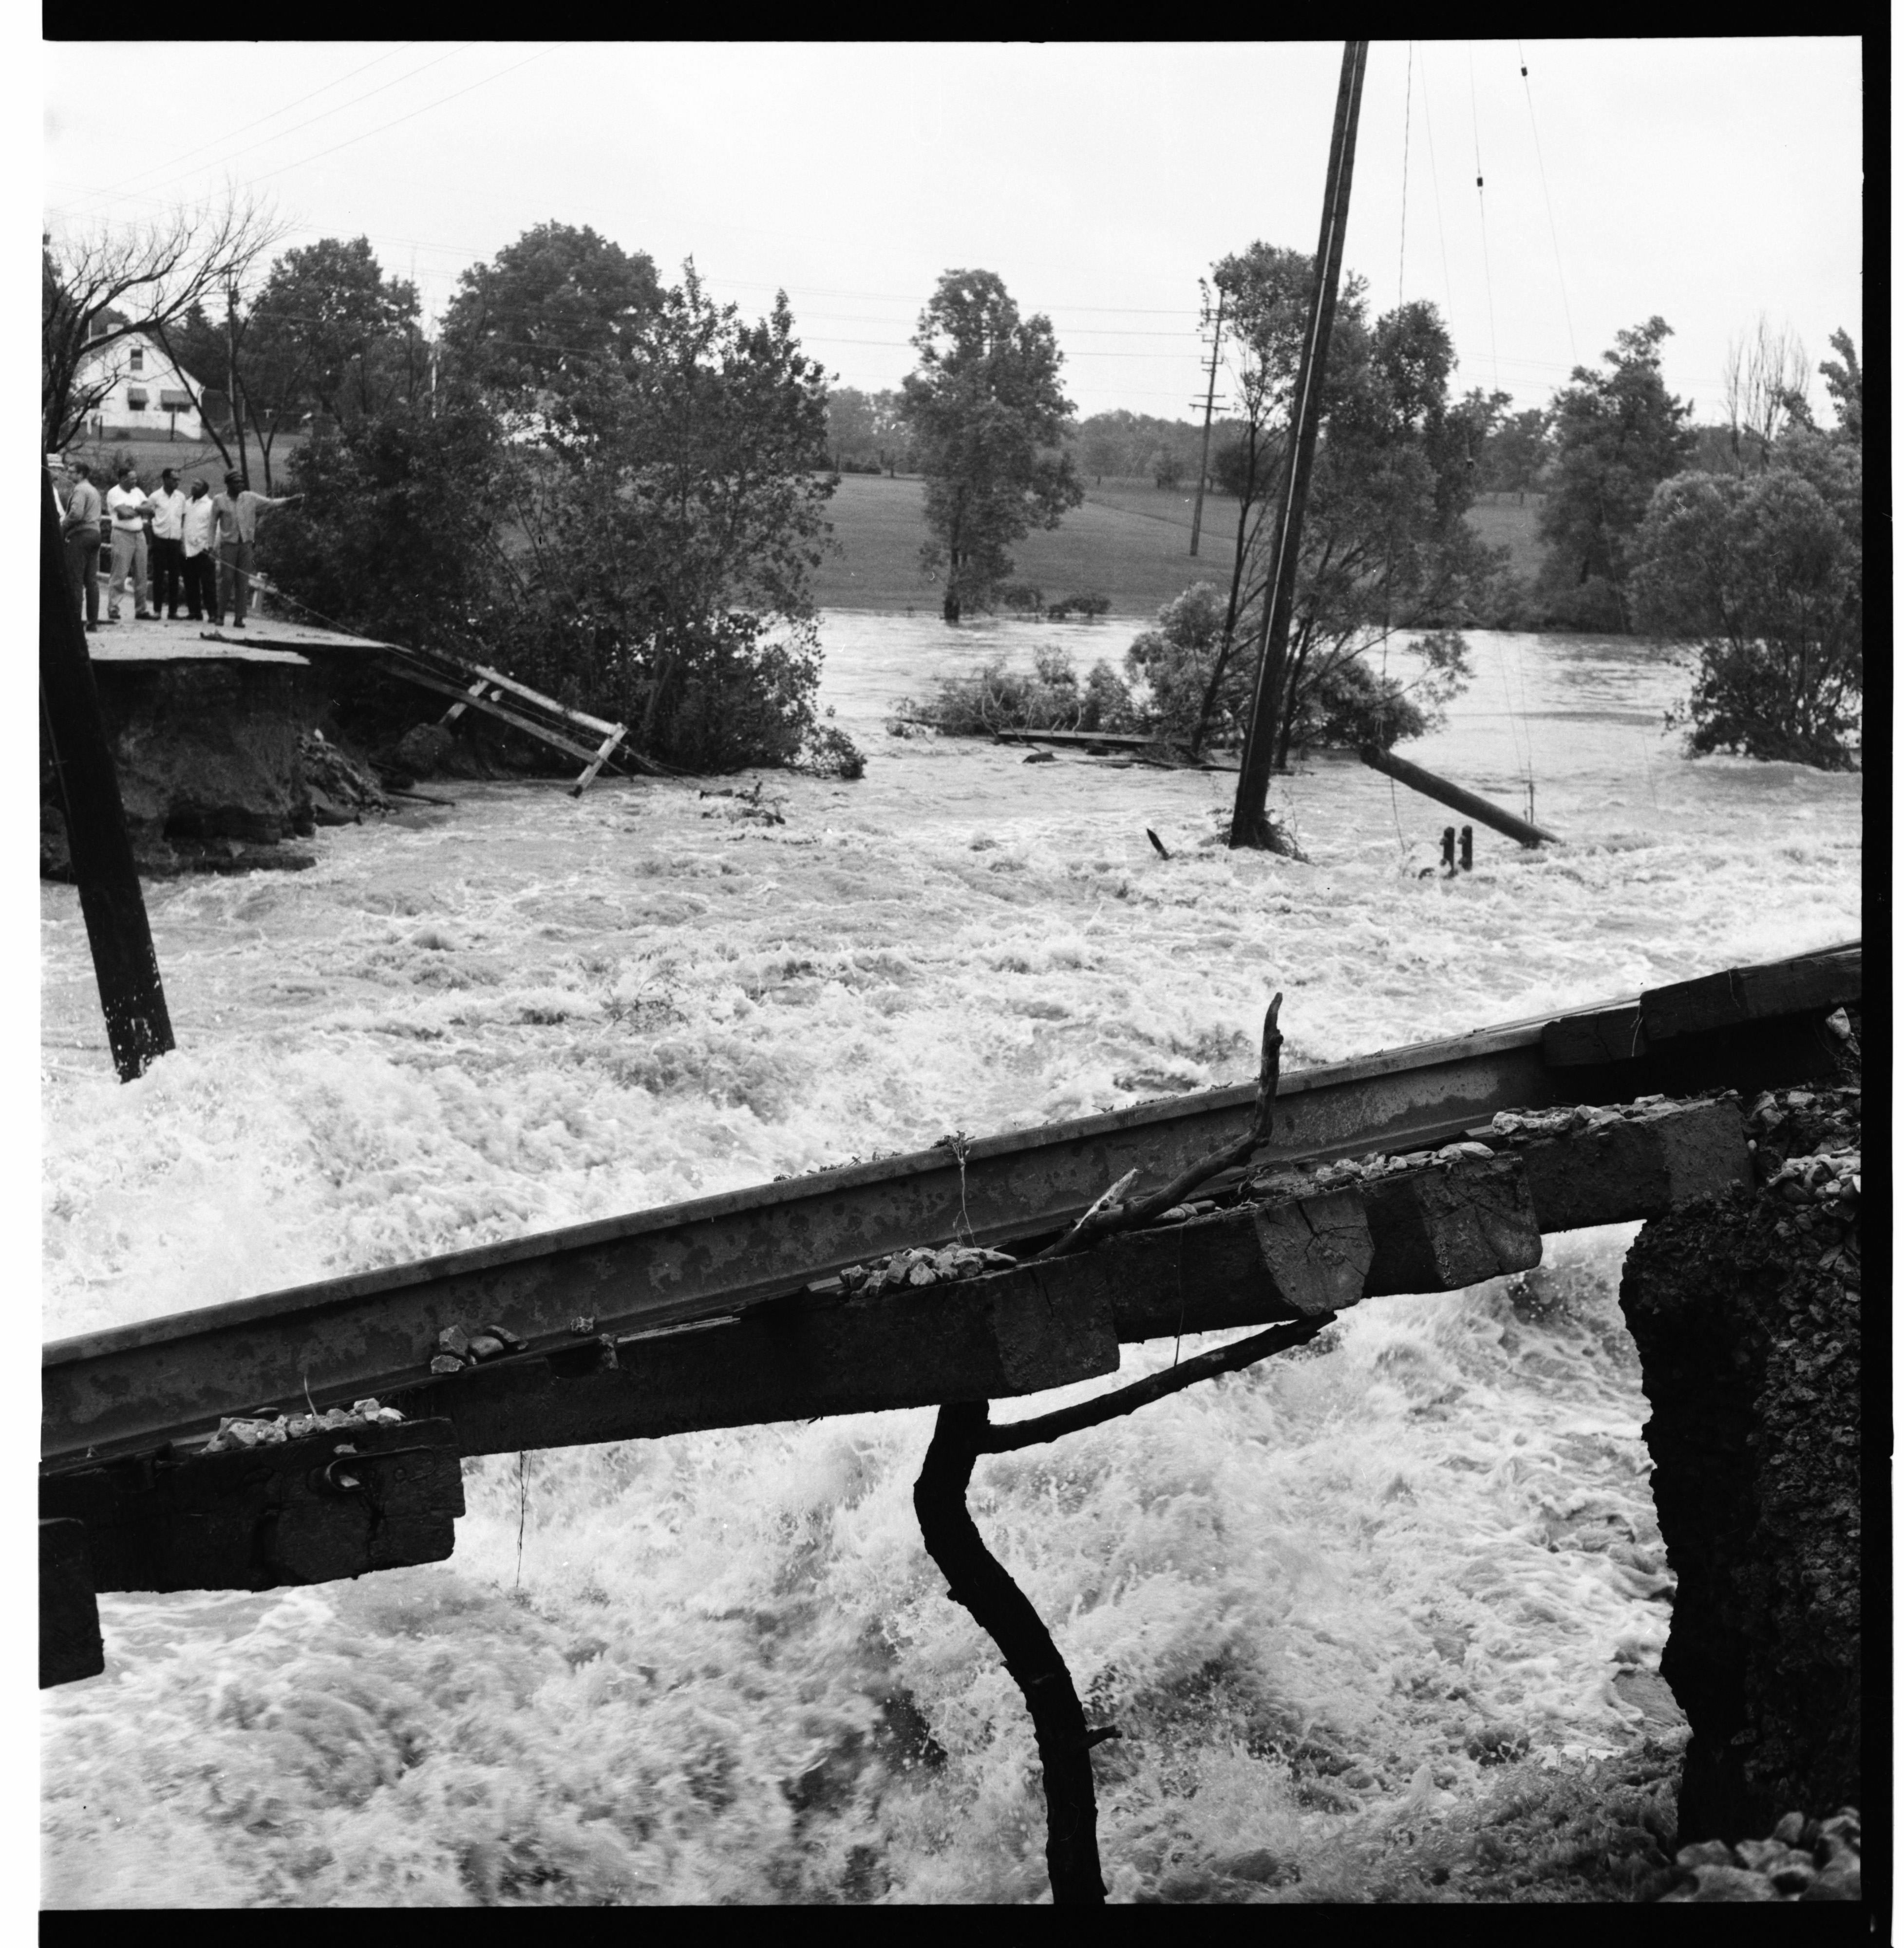 Washed out Dixboro Rd, June 1968 image